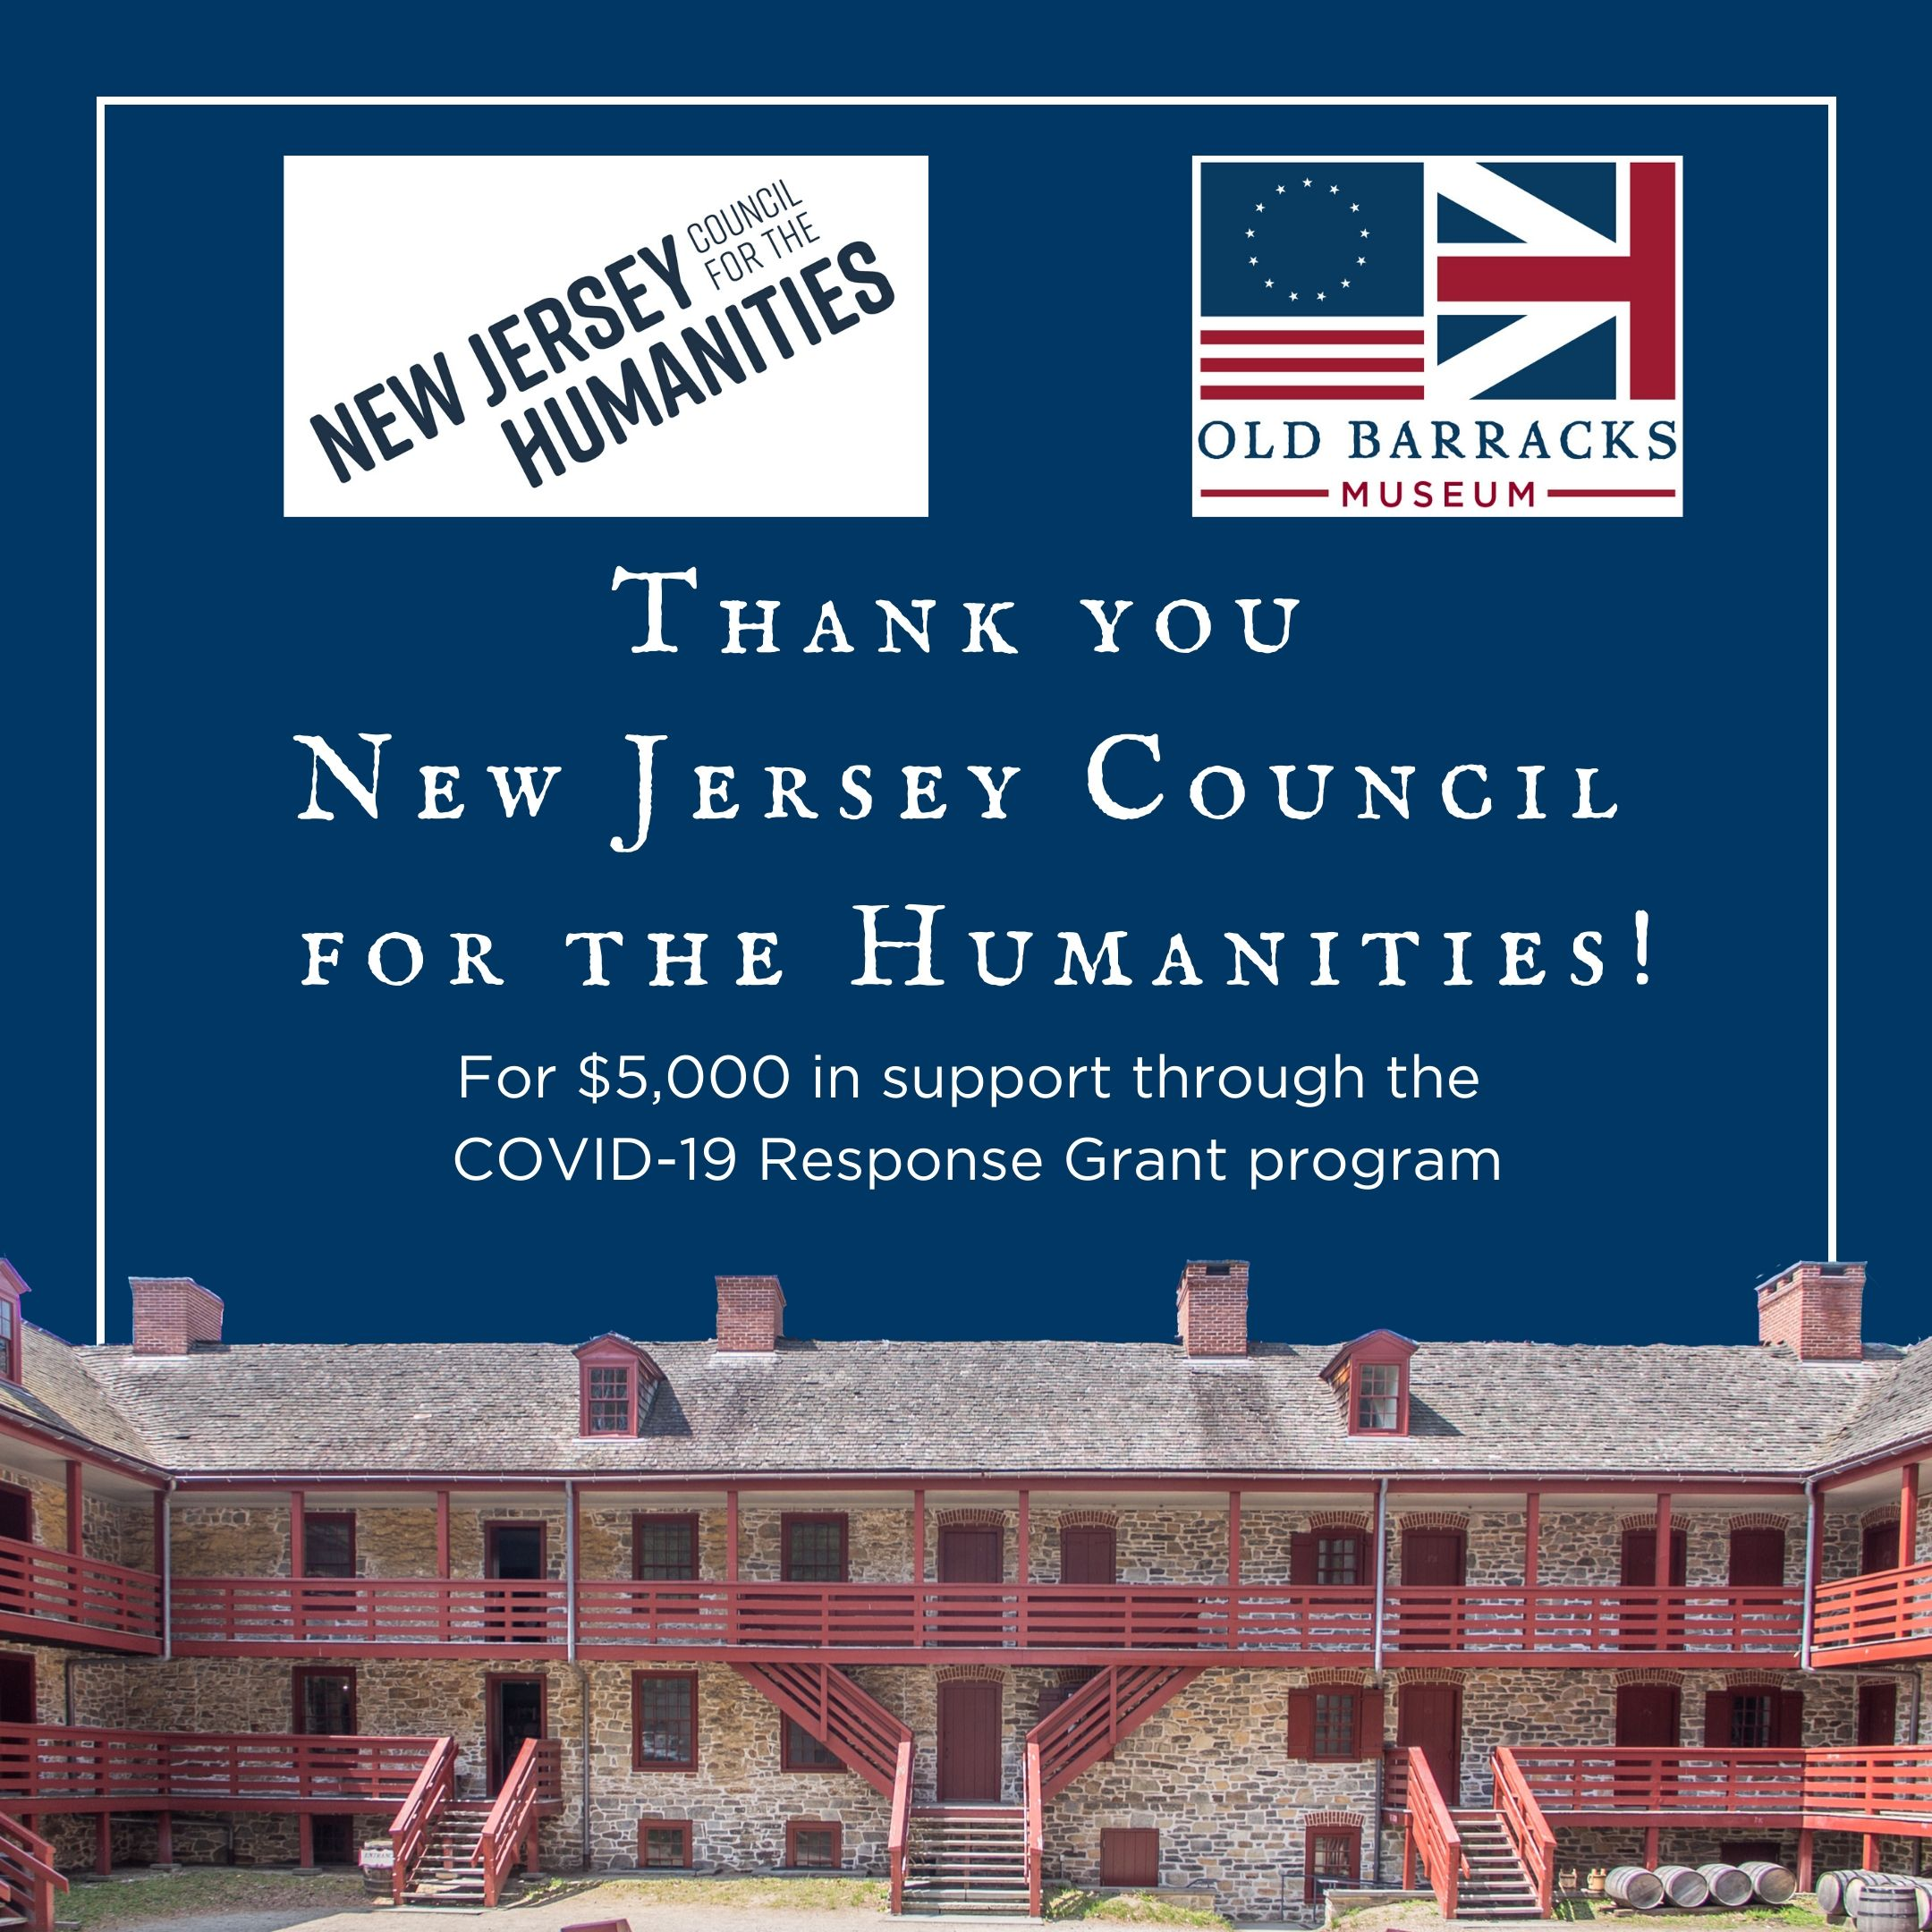 Old Barracks Museum Received NJ Council for Humanities CARES Grant